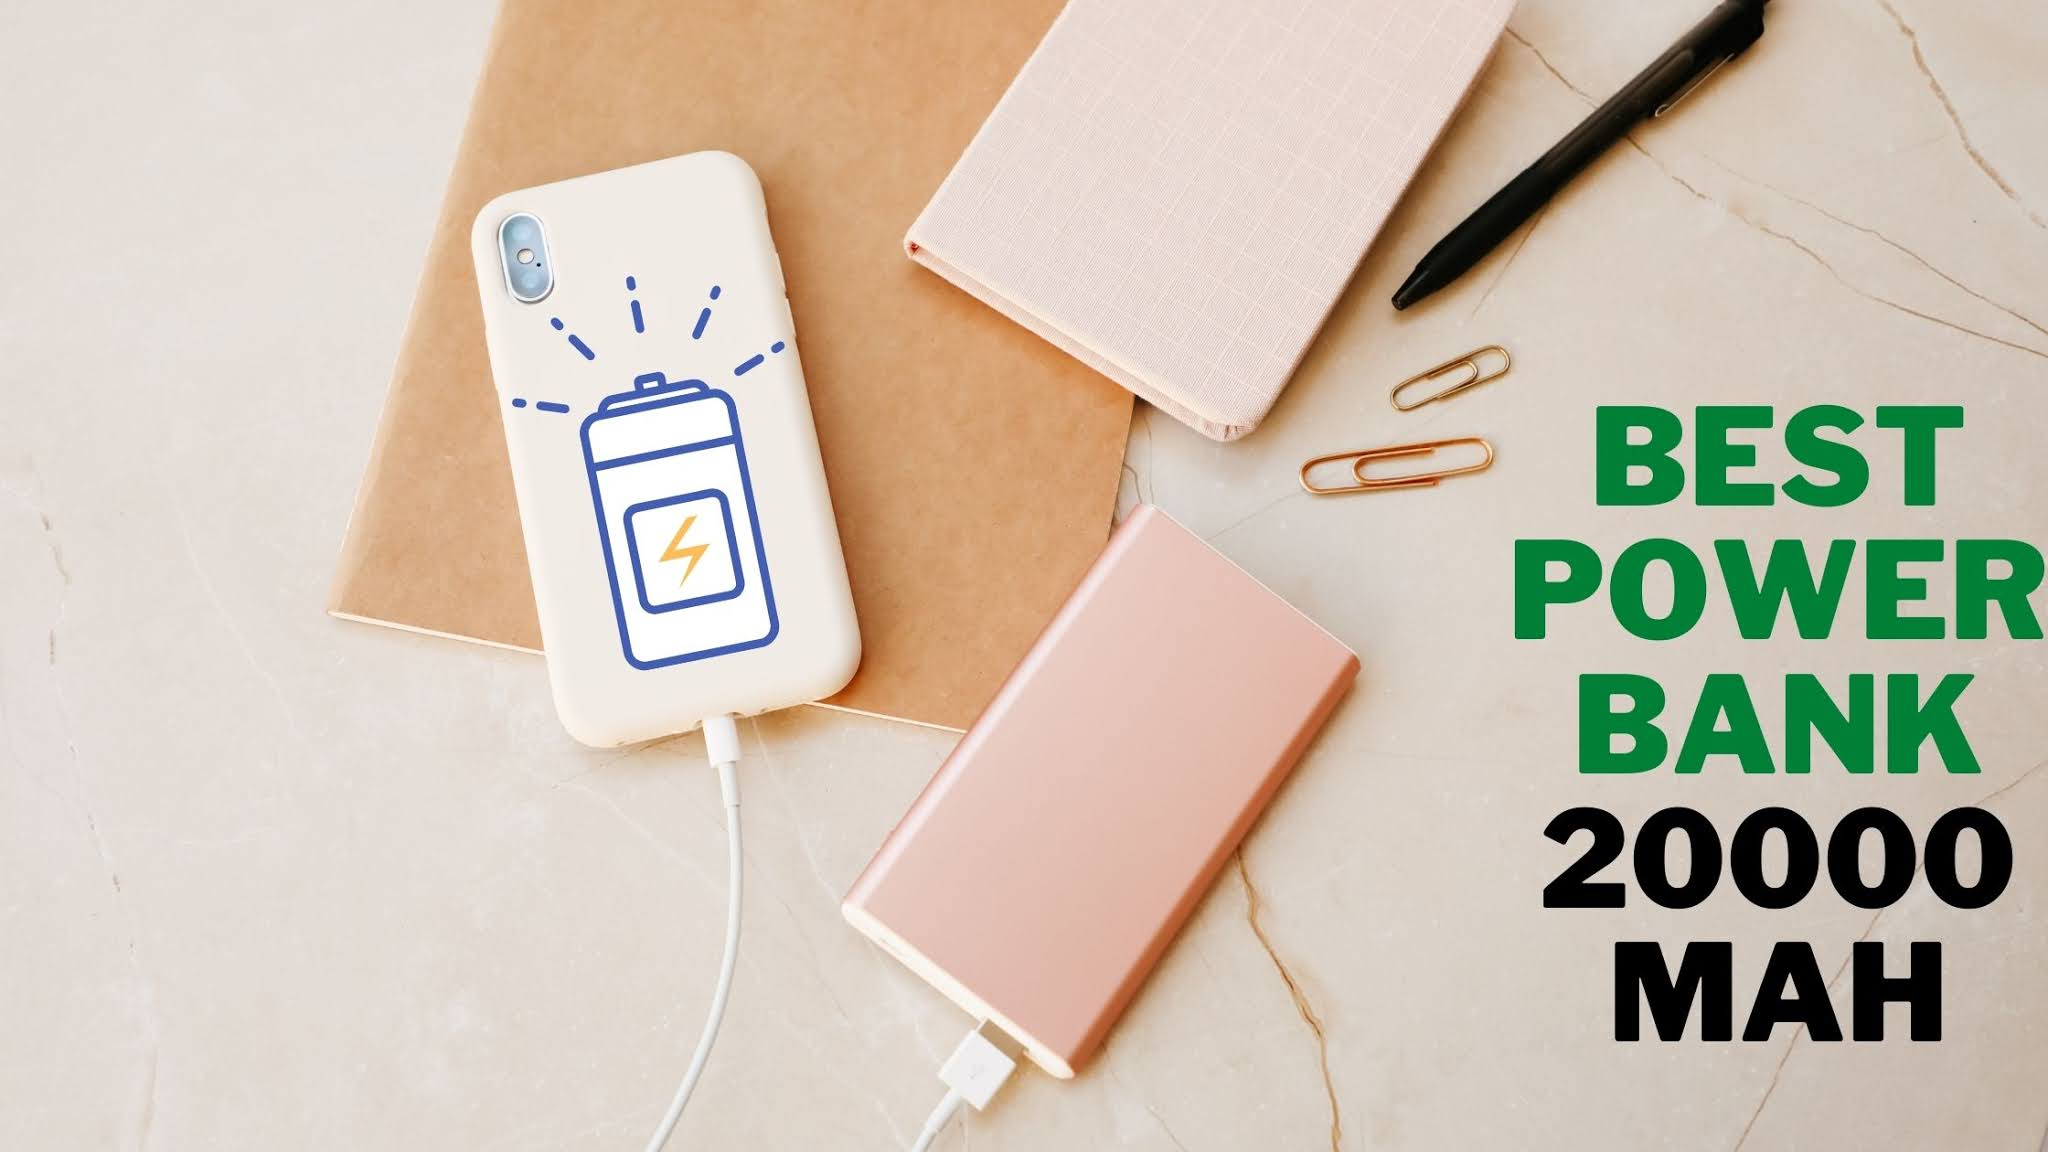 Best Power Bank 20000mah Under Rs 2,000